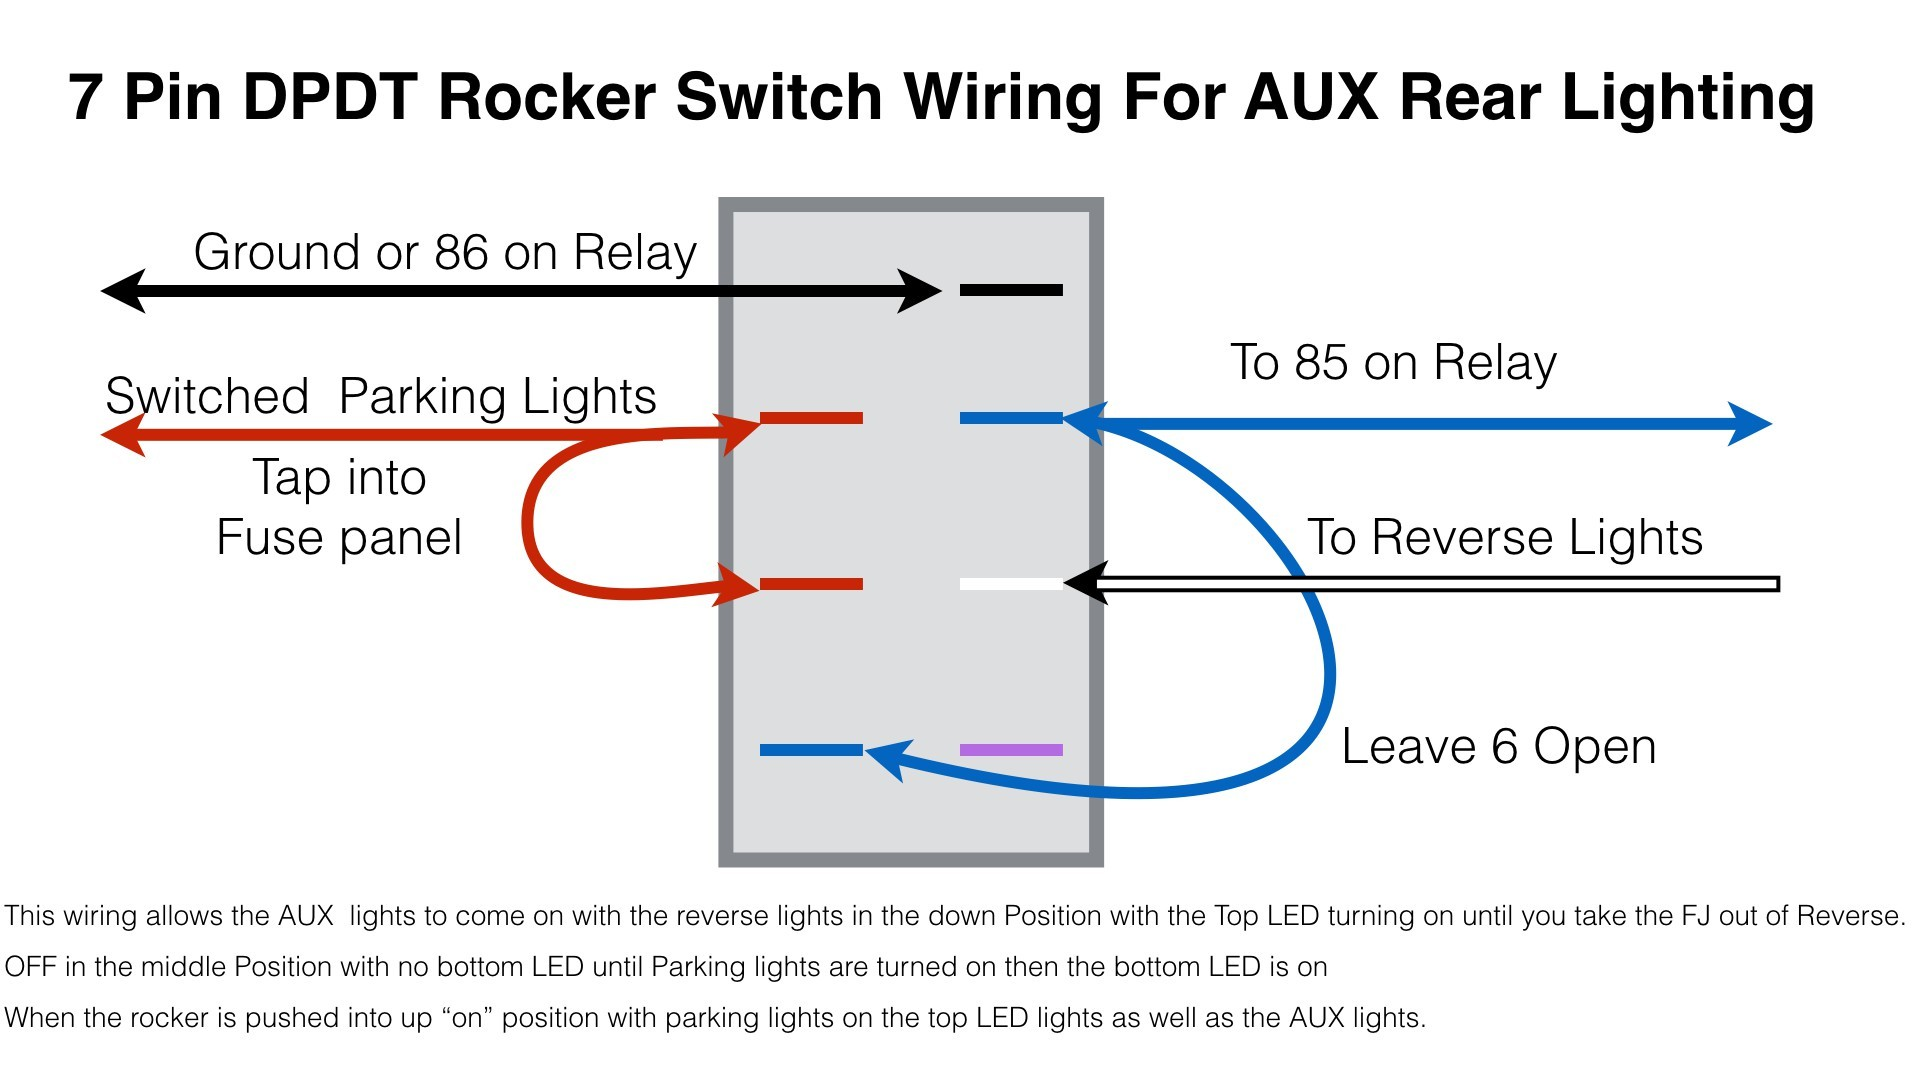 6 Pin Power Window Switch Wiring Diagram Unique 5 Pin Rocker Switch 2004  Chevy Colorado Power Window Diagram Bmw 528i Window Switch Wiring Diagram